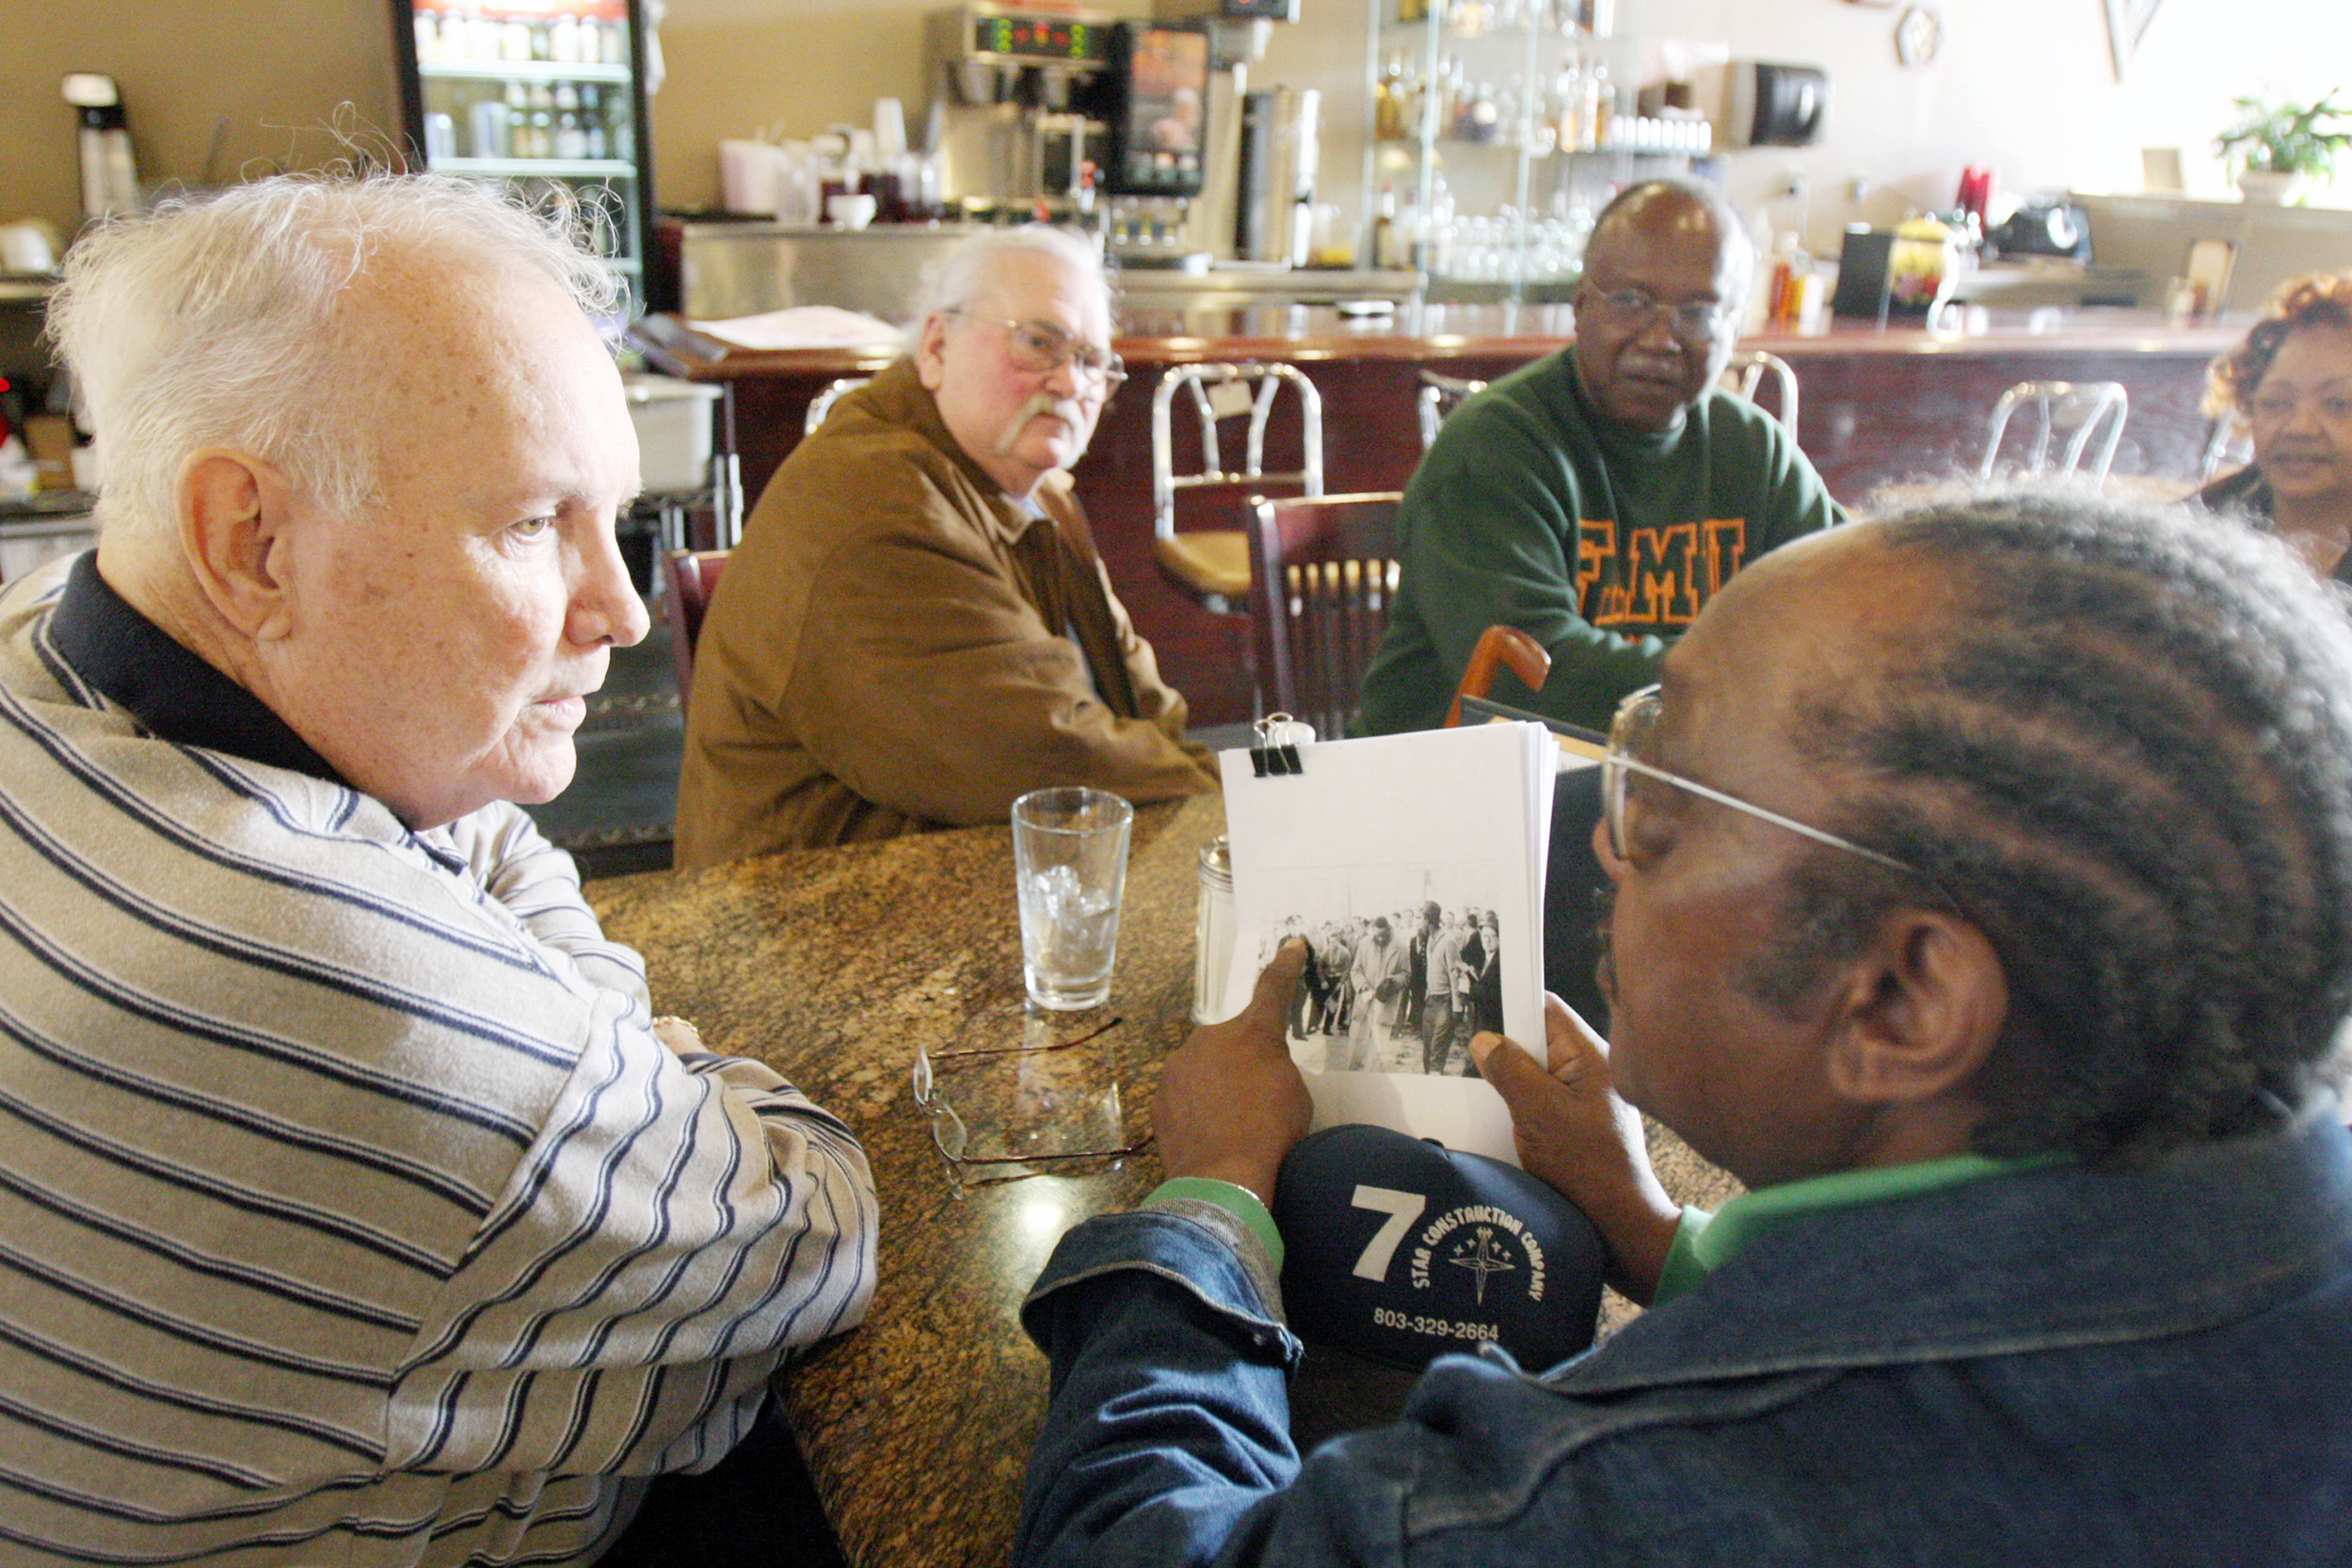 Elwin Wilson, left, and Friendship 9 member Willie McCleod, right, look over pictures from civil rights incidents in Rock Hill in the 1960s. James Wells, a member of the civil rights protest group, died Sunday at 77.